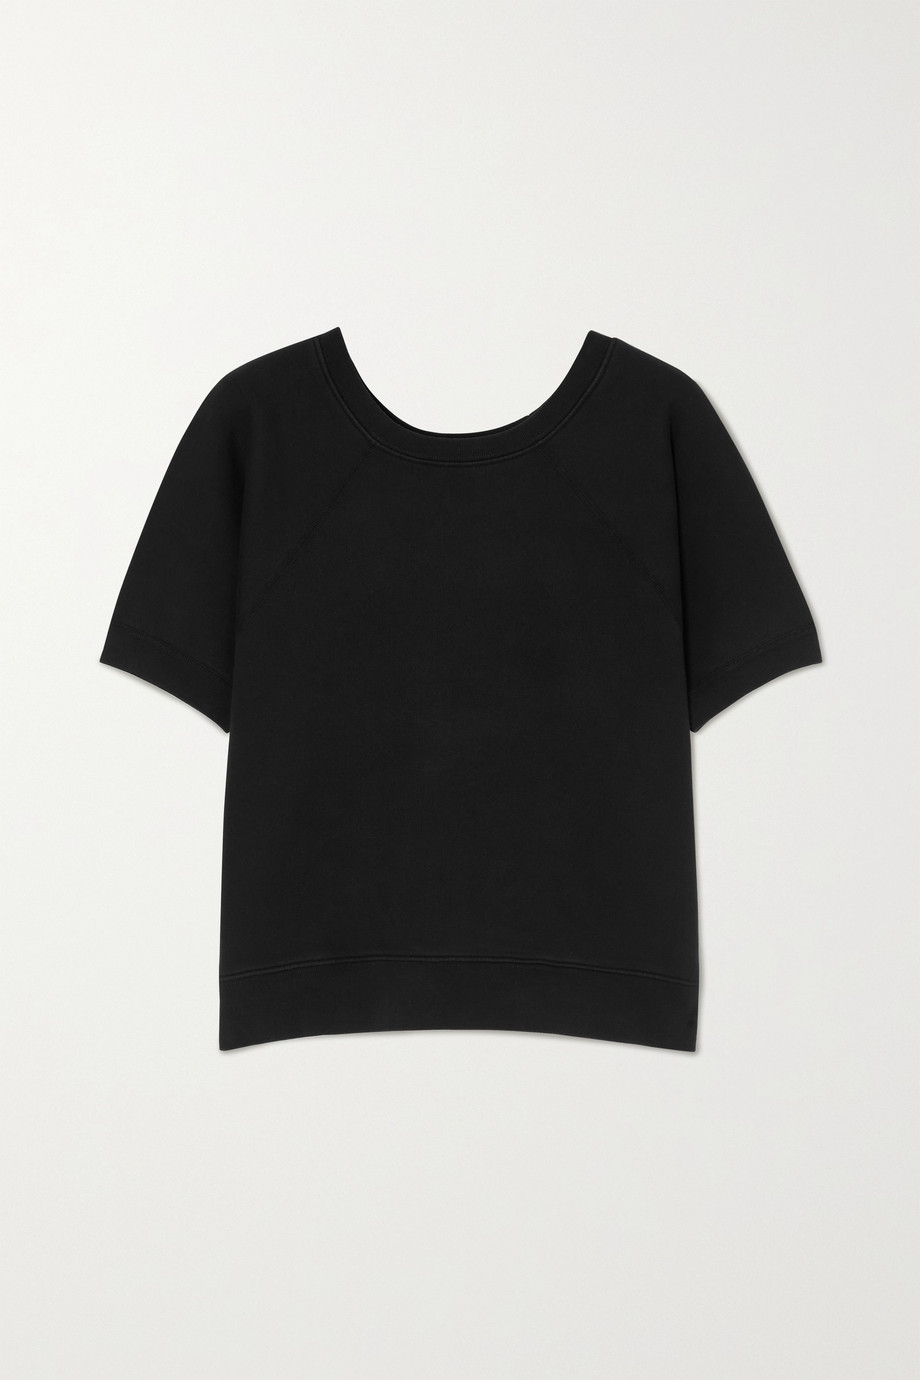 Nili Lotan Ciara cotton-jersey top